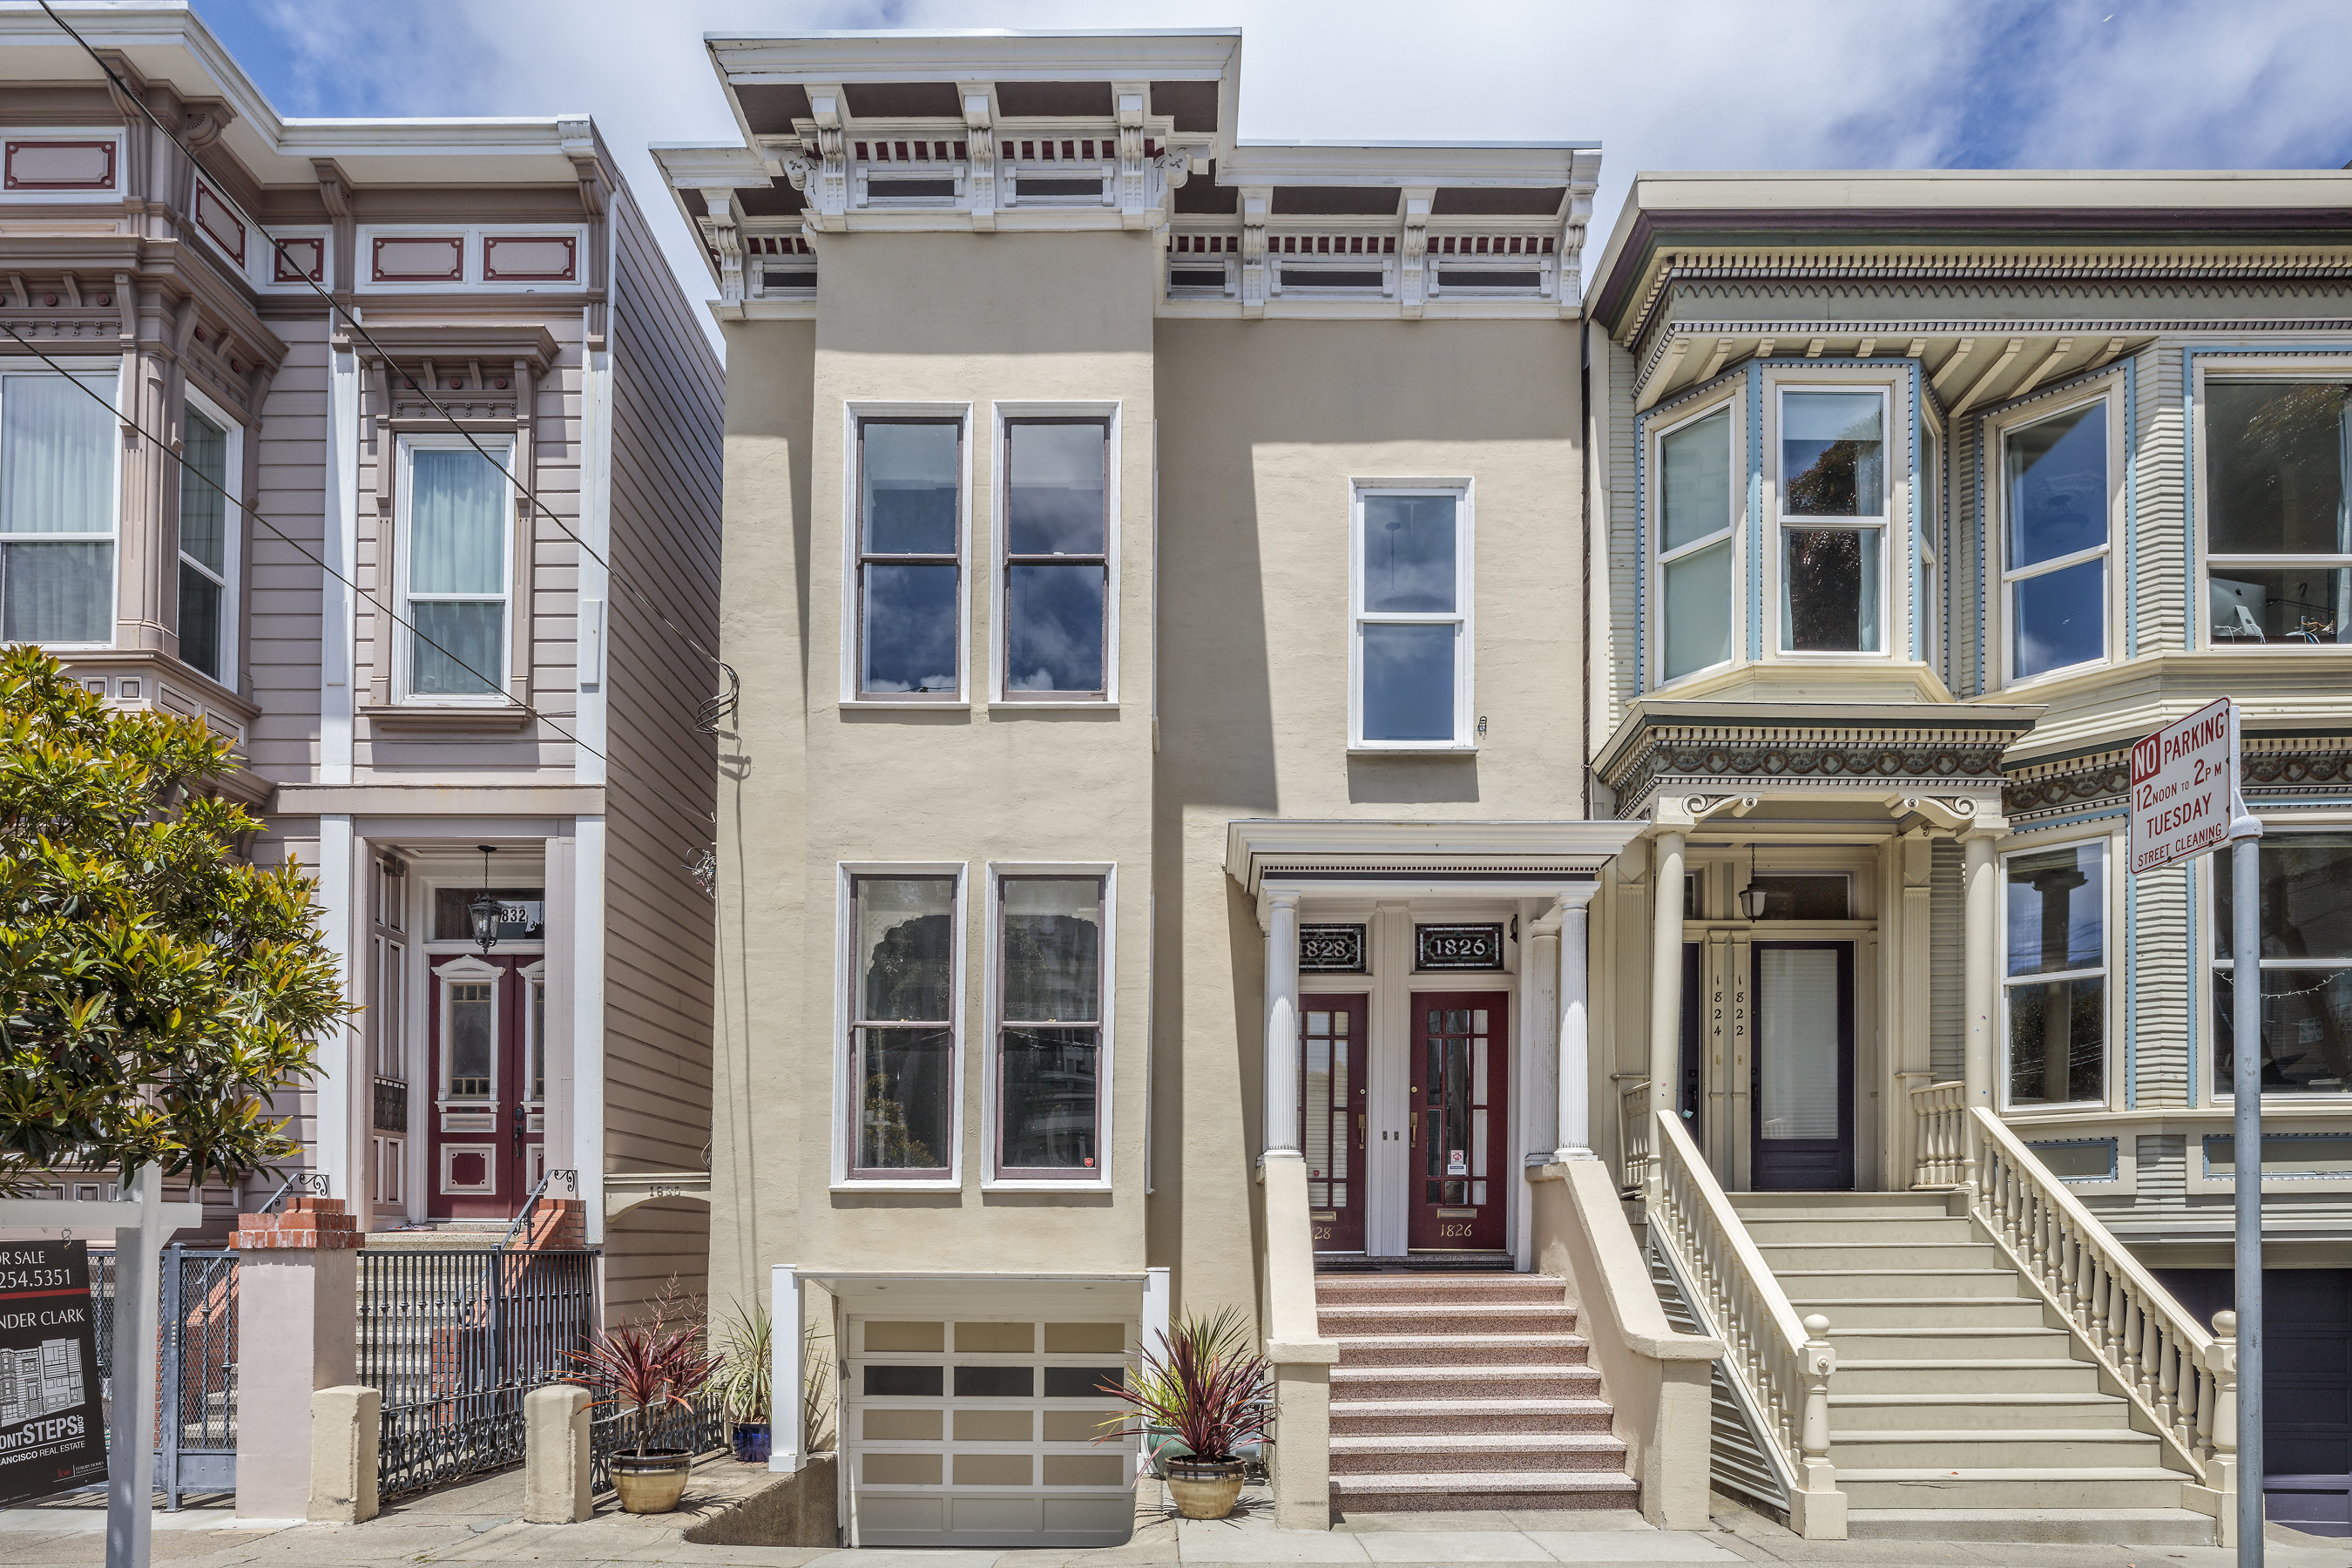 Still Available! Top Floor 2+ Bedroom Victorian In A+++ Location